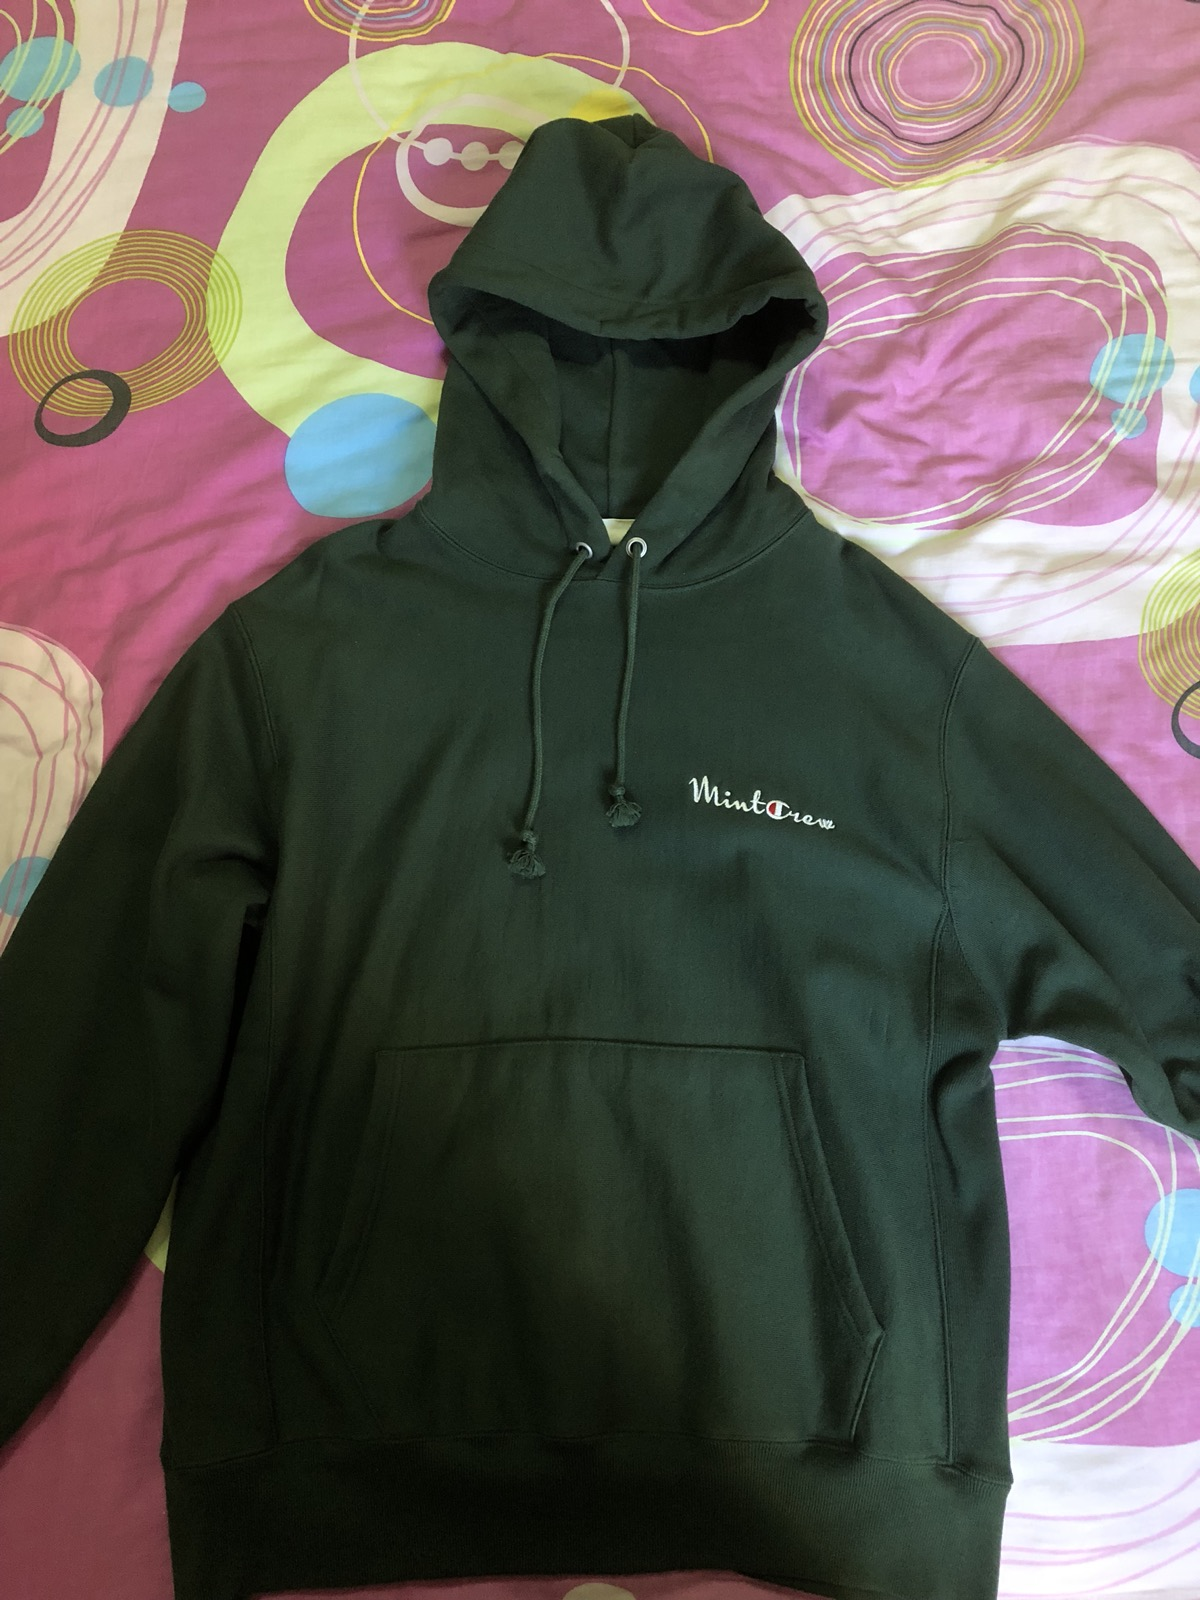 a6f8304a9197 Champion Mintcrew x Champion Reverse Weave Hoodie Size m - Sweatshirts    Hoodies for Sale - Grailed